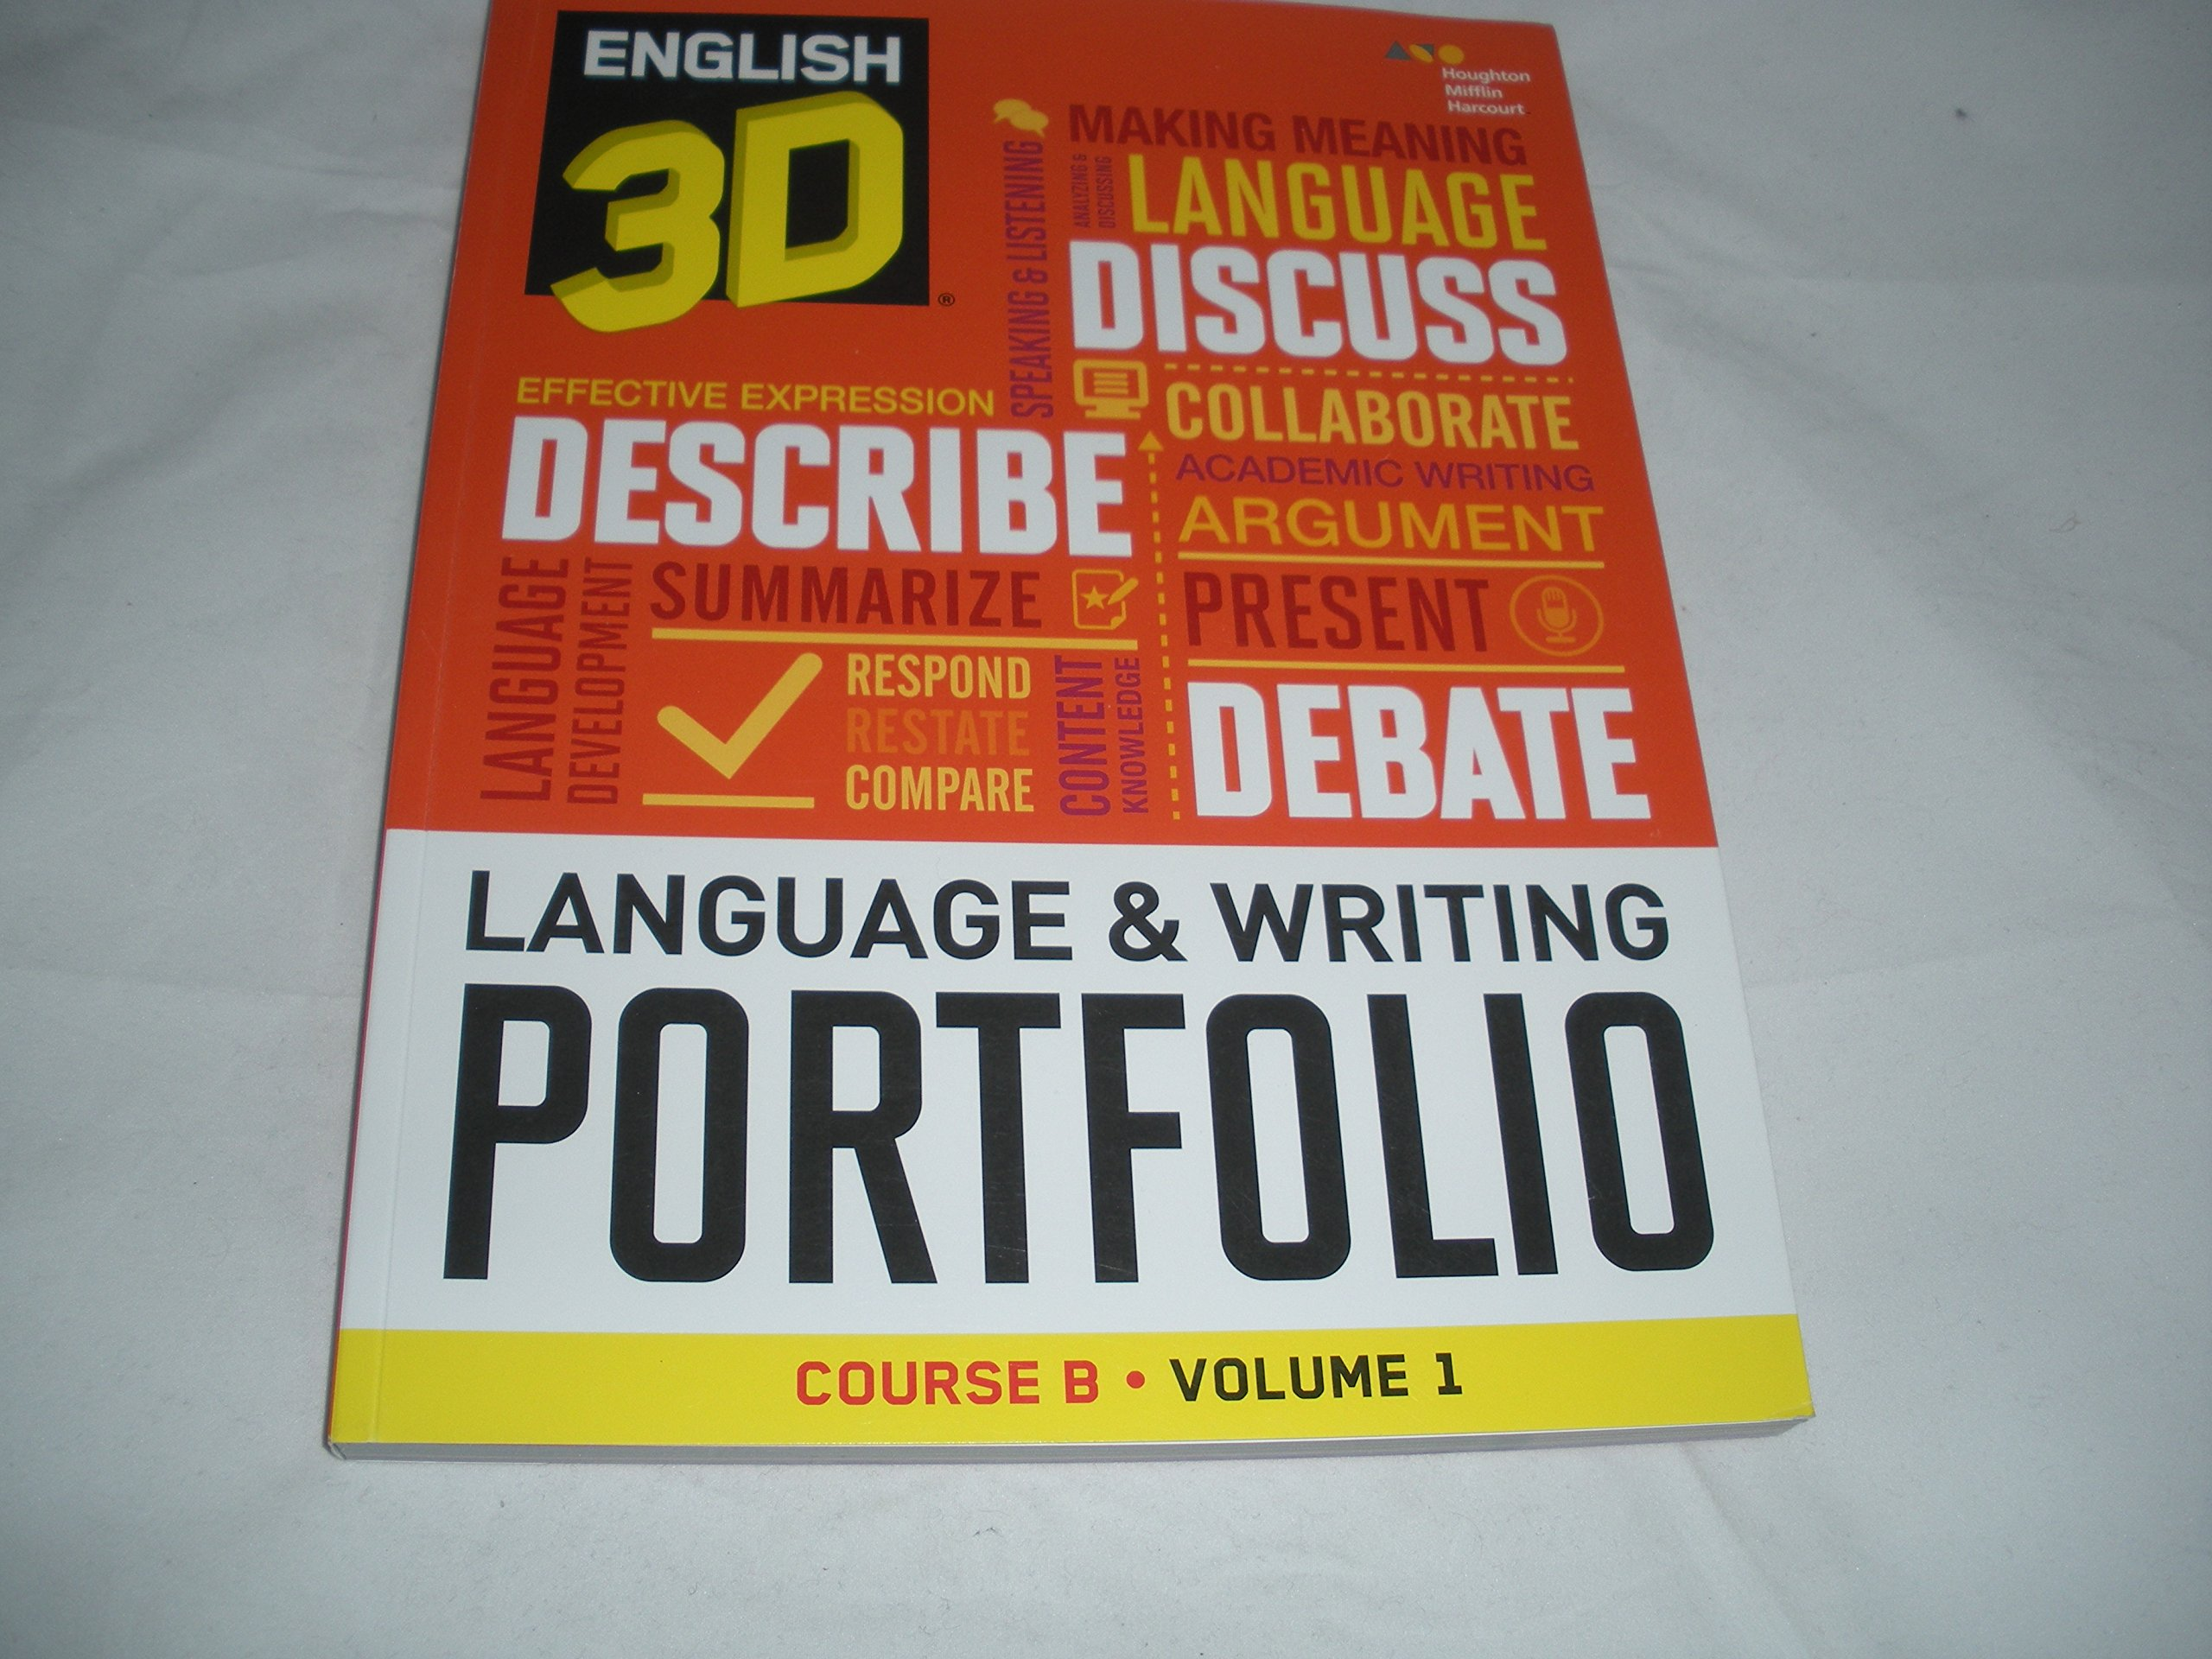 English 3D Language & Writing Portfolio Course B Volume 1 PDF